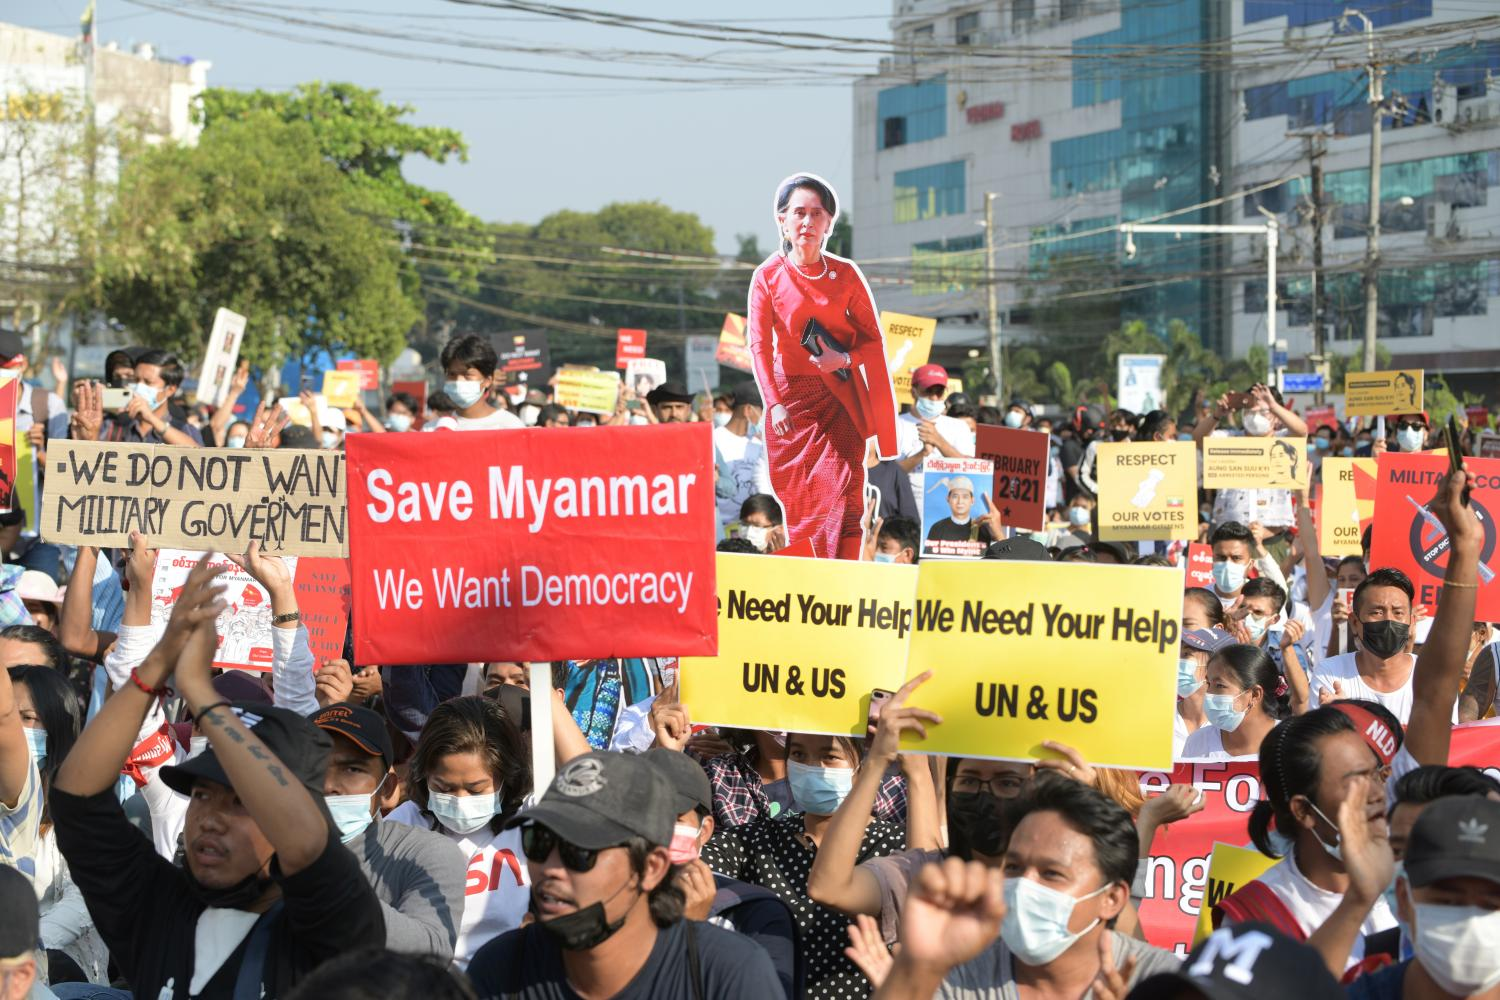 Demonstrators hold placards and a cutout with the image of Aung San Suu Kyi during a protest against the military coup in Yangon, Myanmar, yesterday. REUTERS